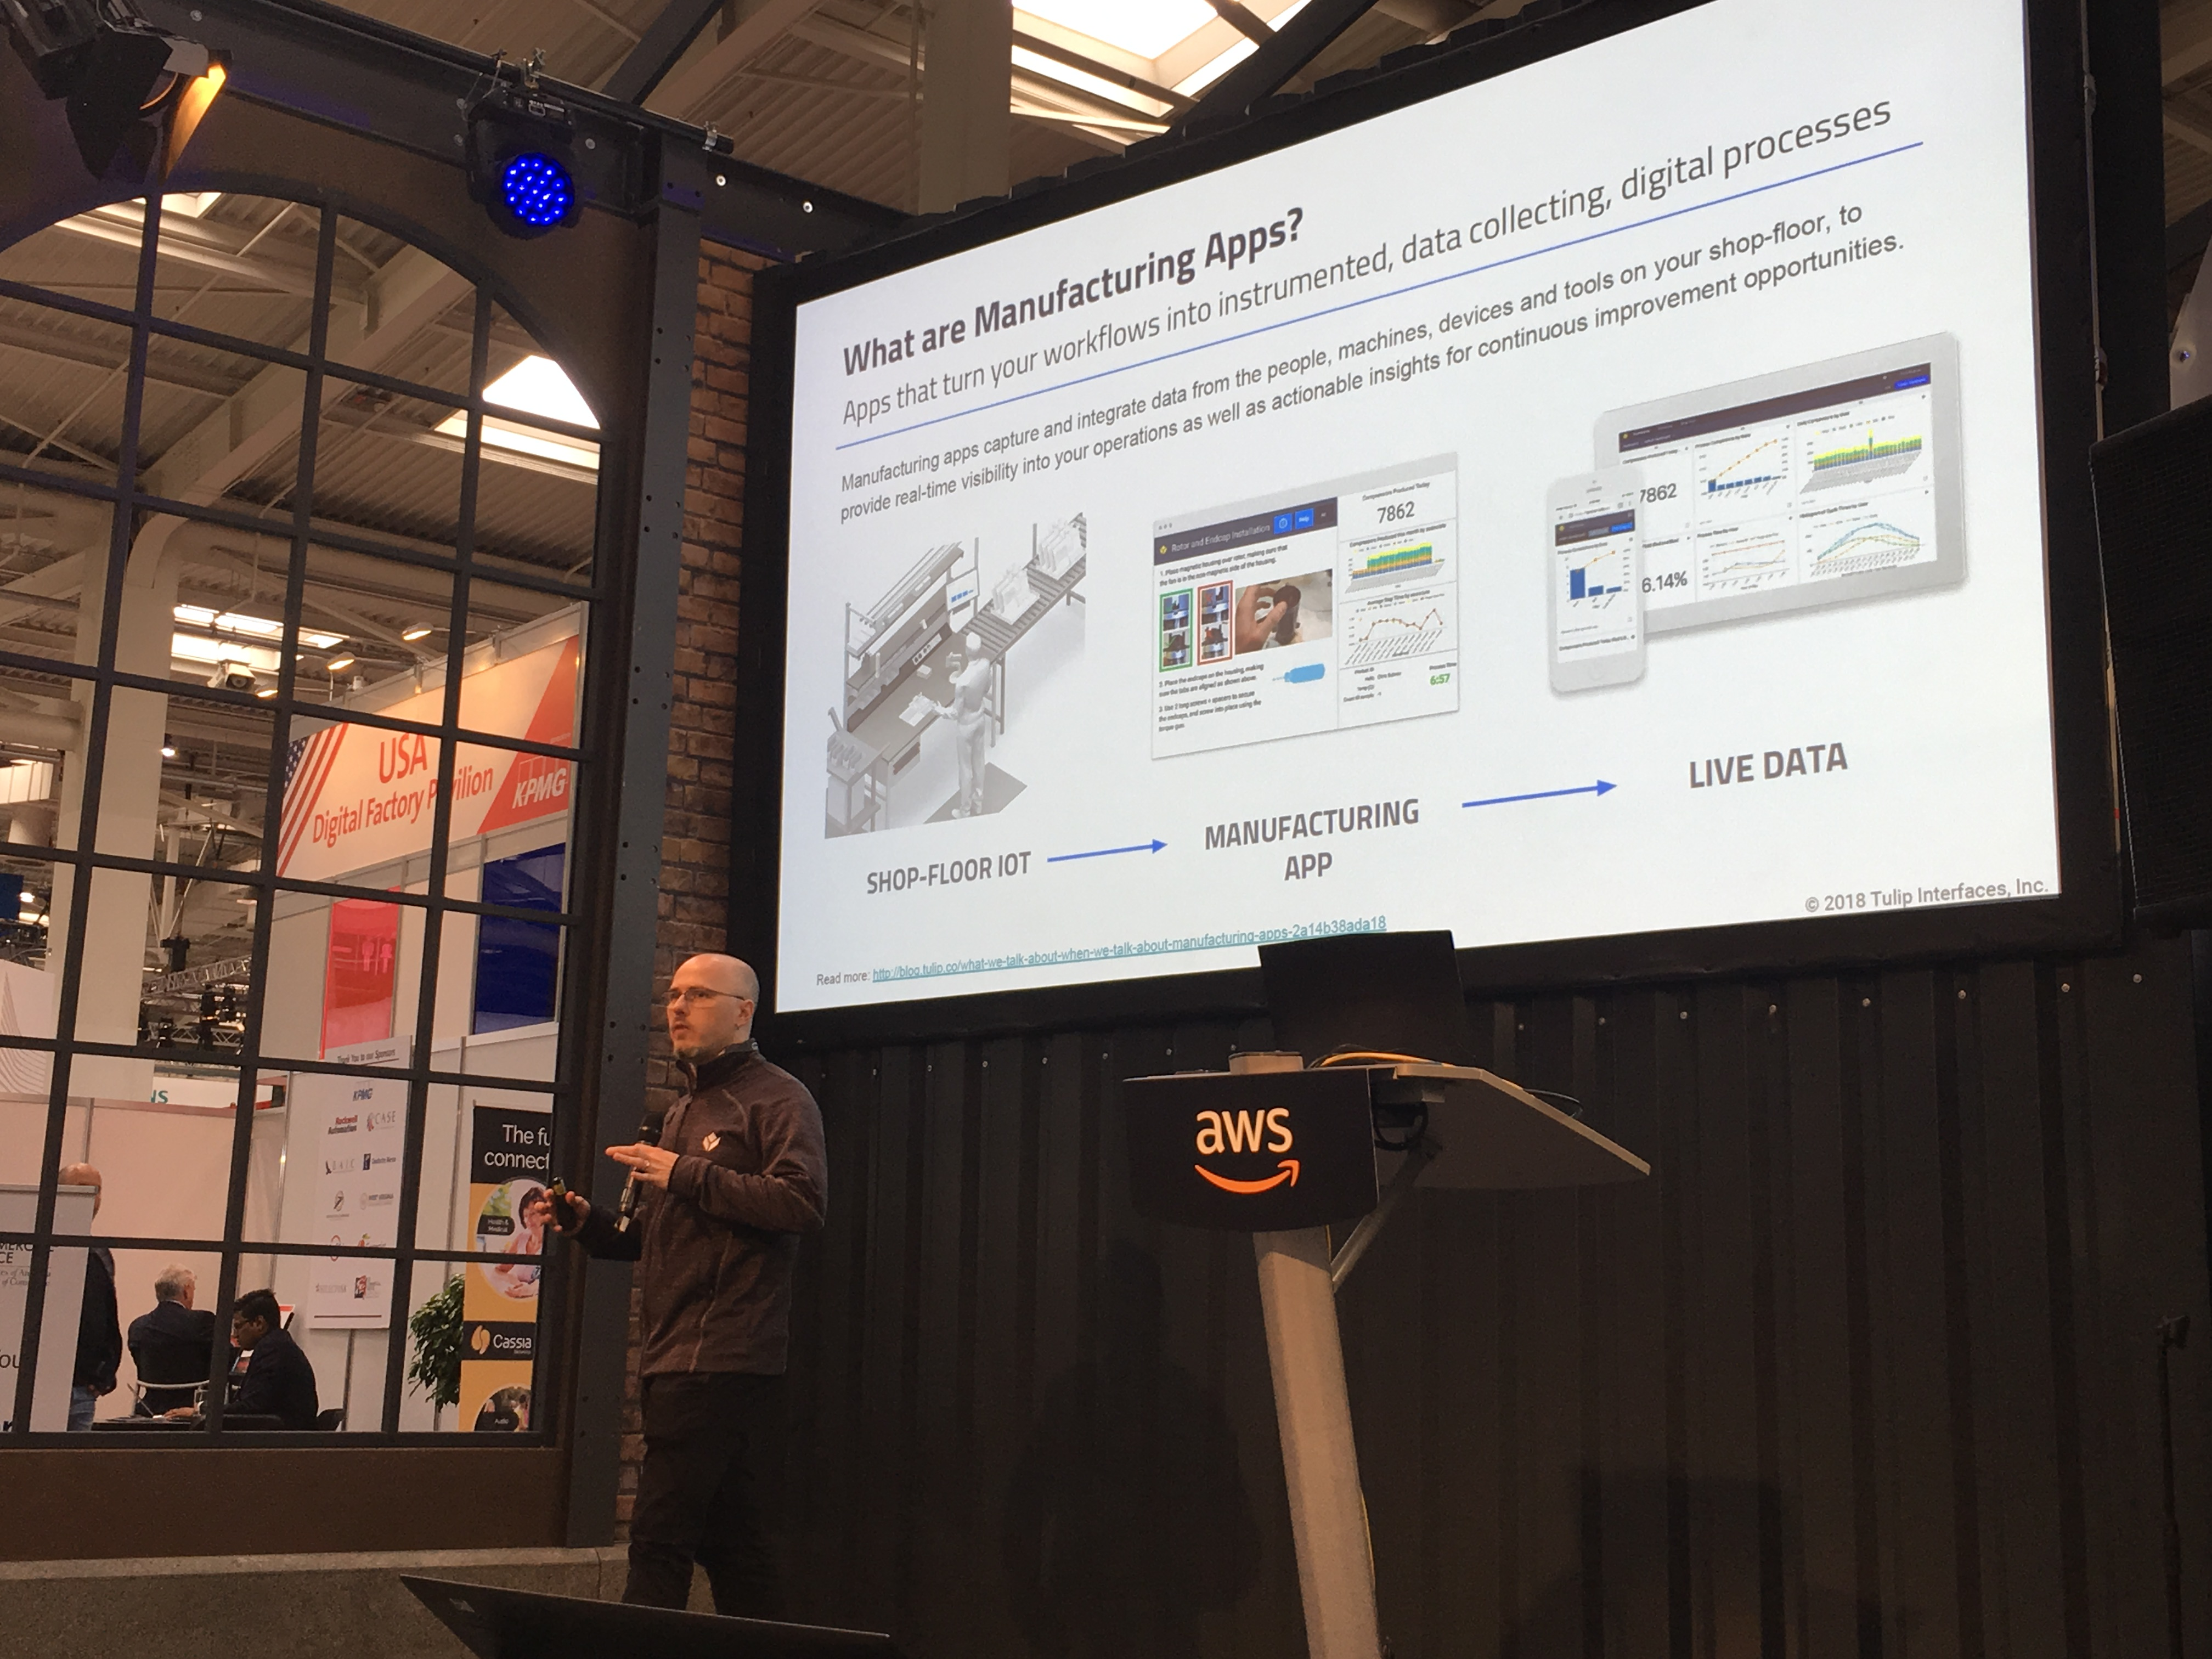 Rony Kubat, Tulip's Co-founder, delivering a lecture at the AWS Pavilion in Hannover Messe